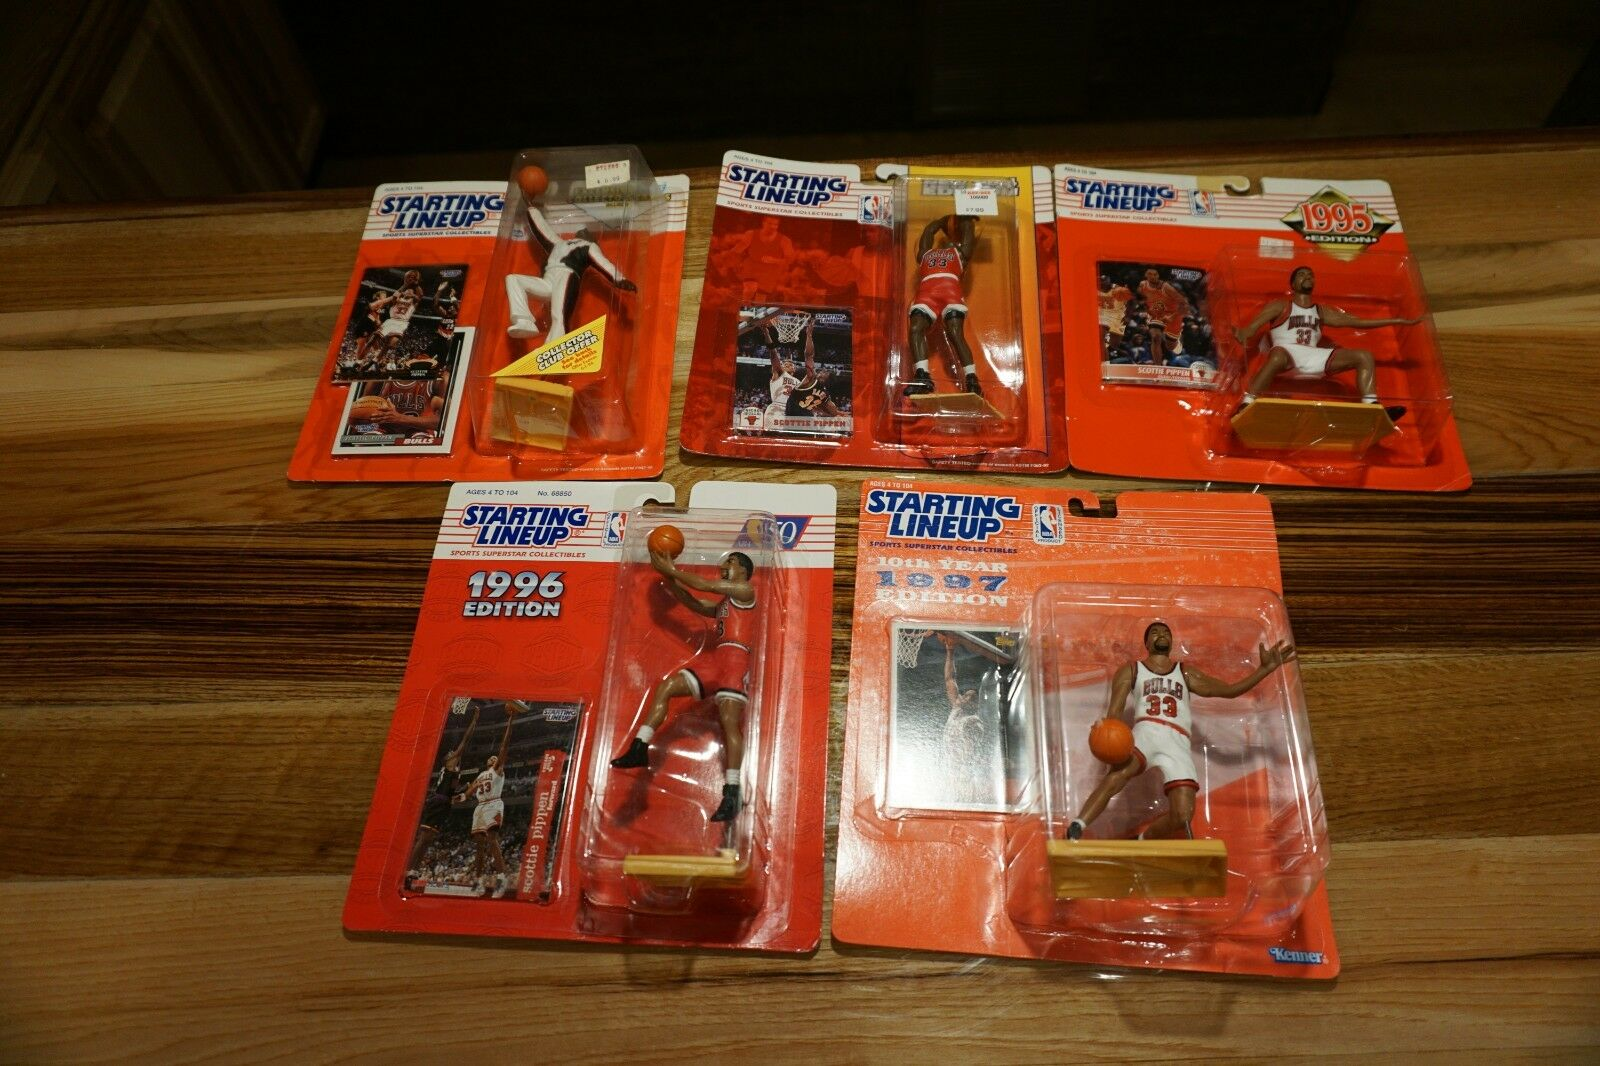 5 SCOTTIE PIPPEN Starting Lineup Figures New in Box (93,94,95,96,97)